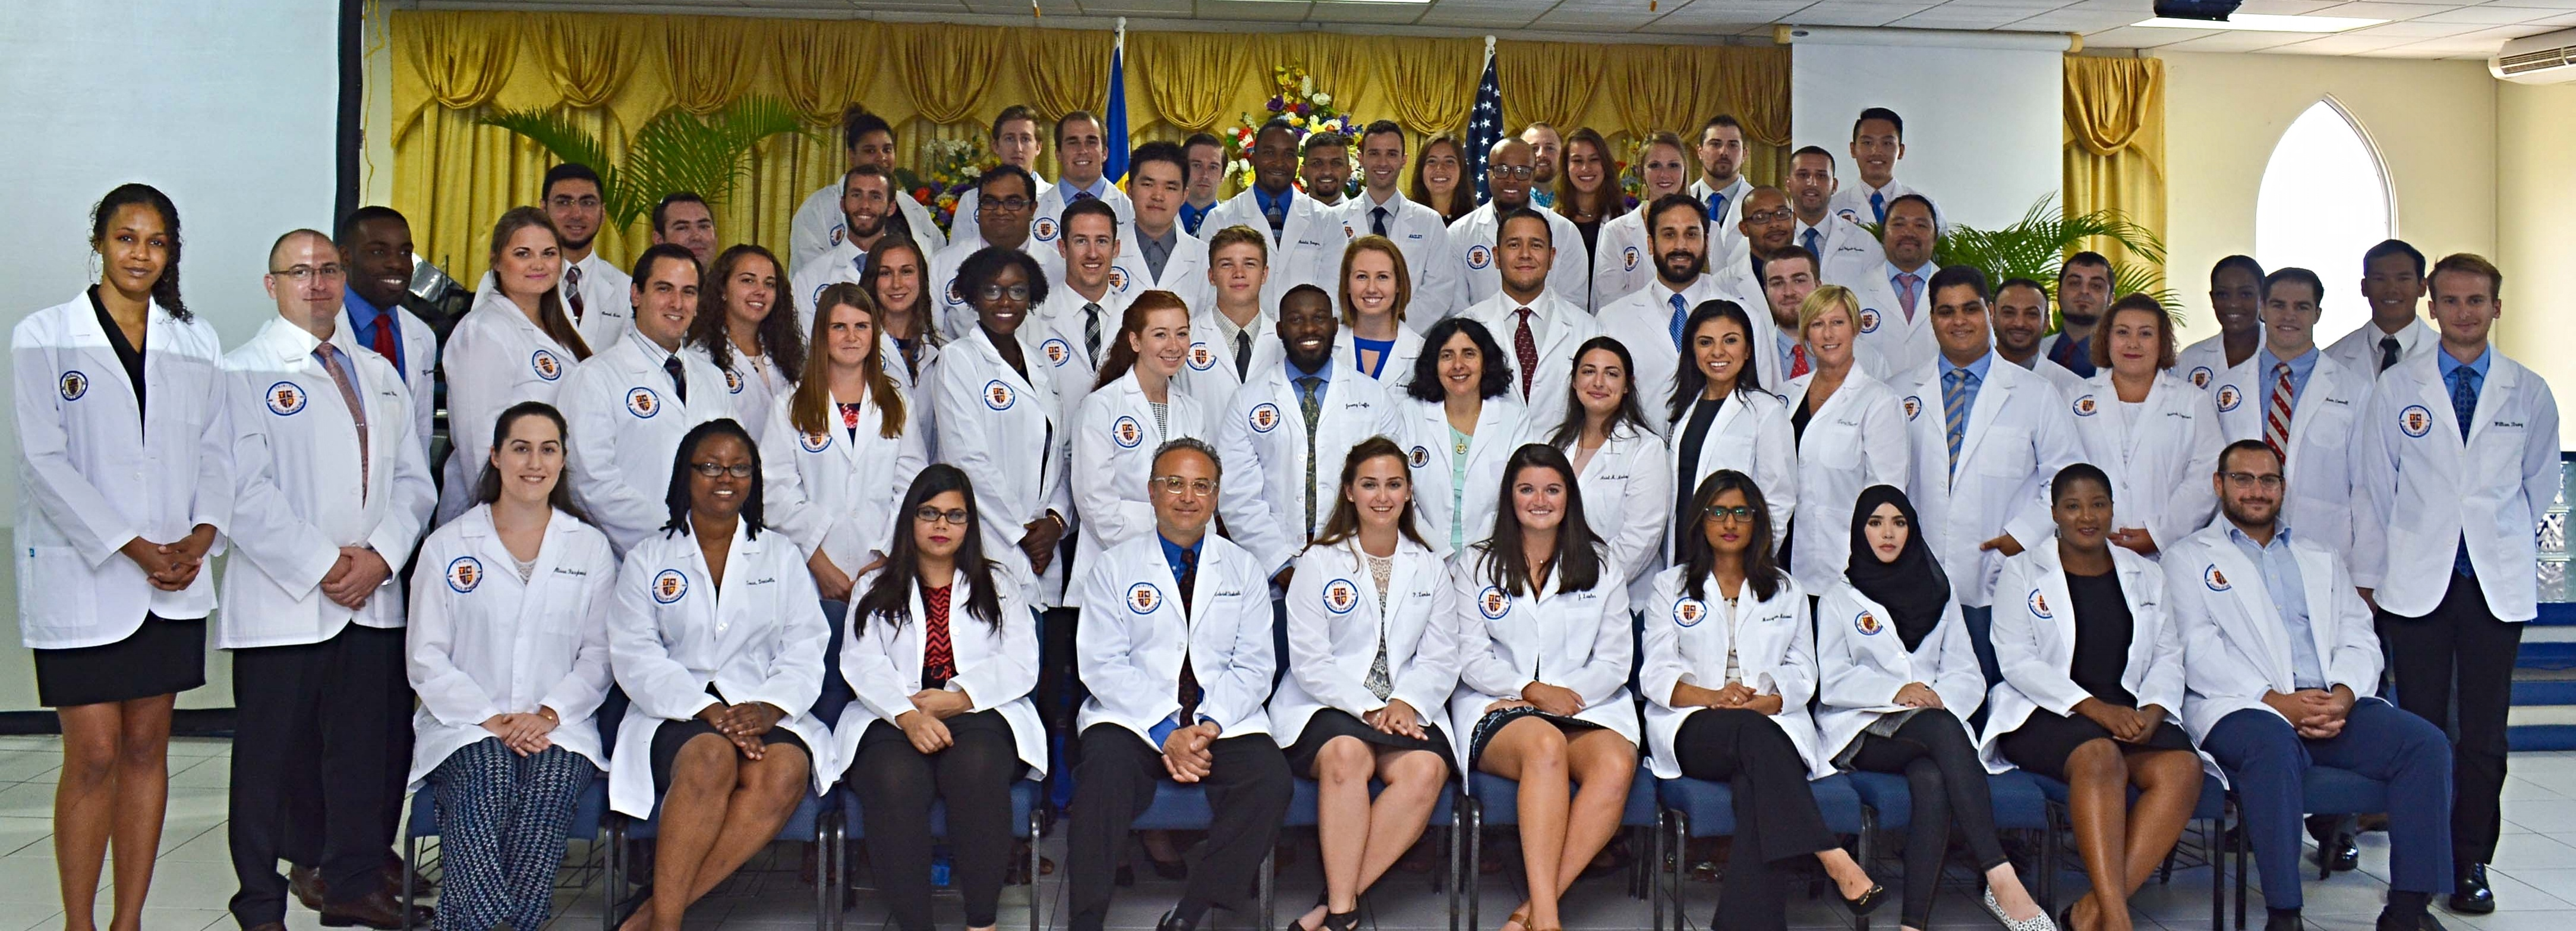 Trinity School of Medicine Holds September 2017 White Coat Ceremony